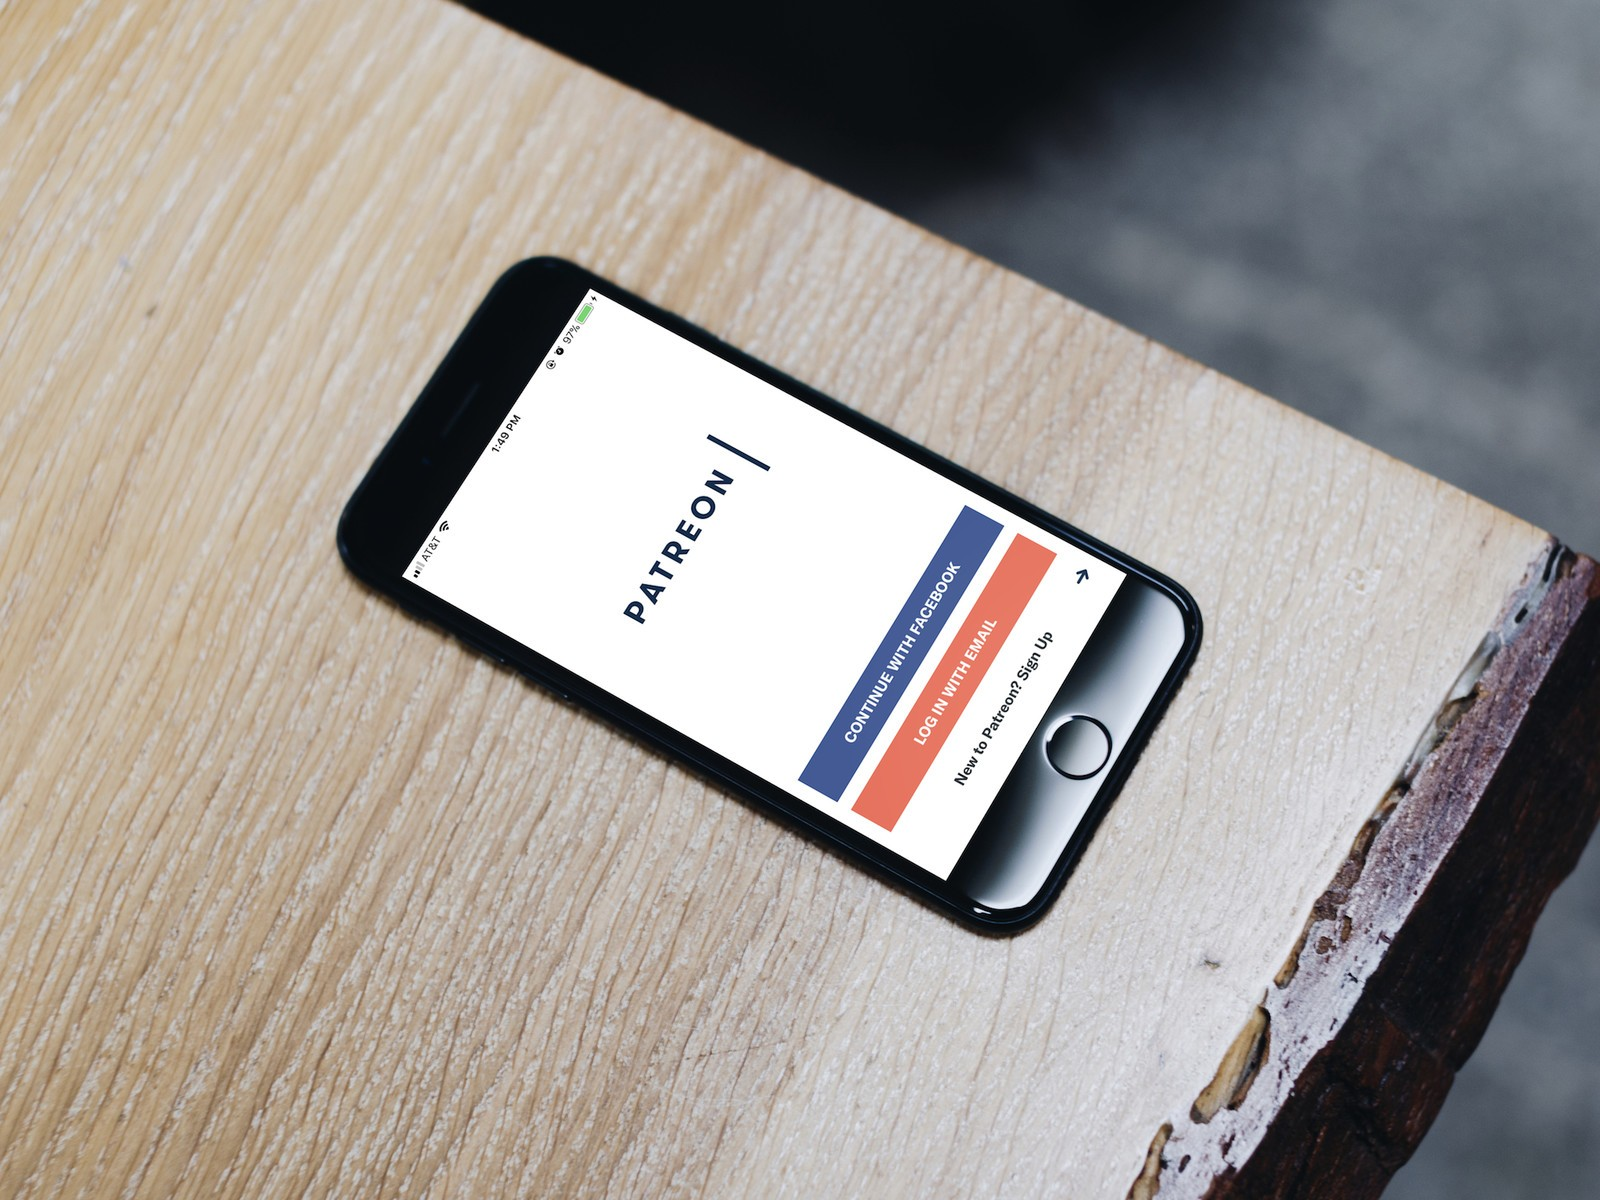 A black iPhone on a wooden surface with the Patreon app pulled up on the screen